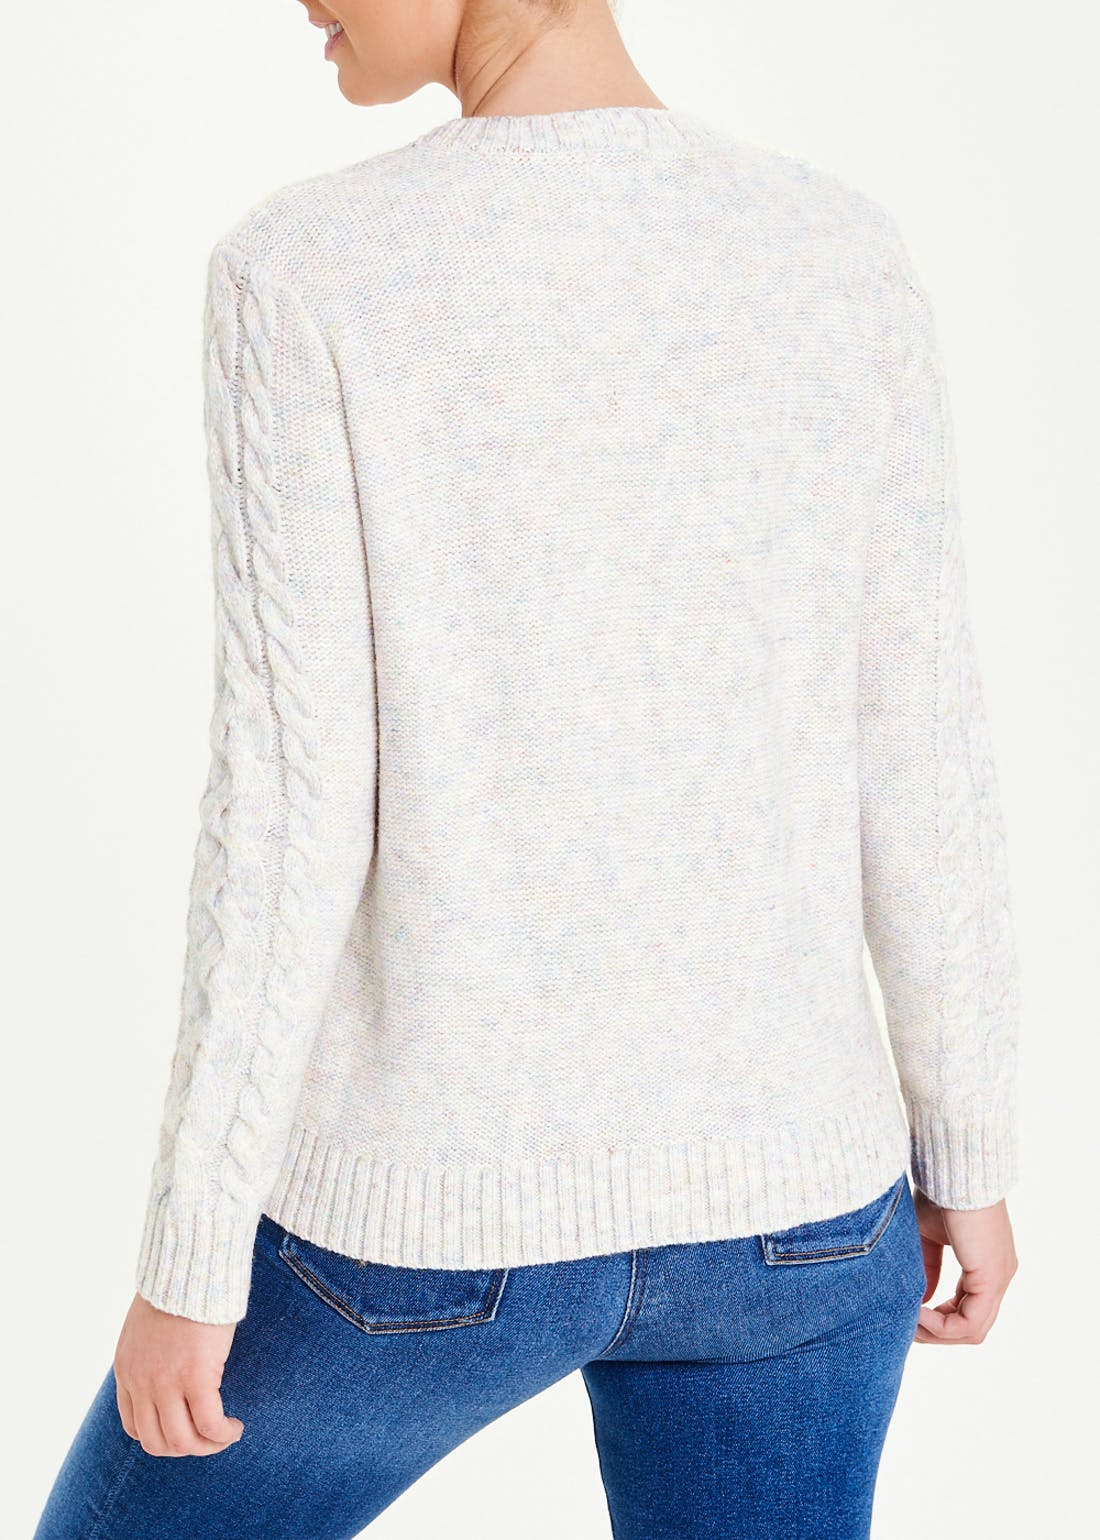 Textured Cable Knit Jumper